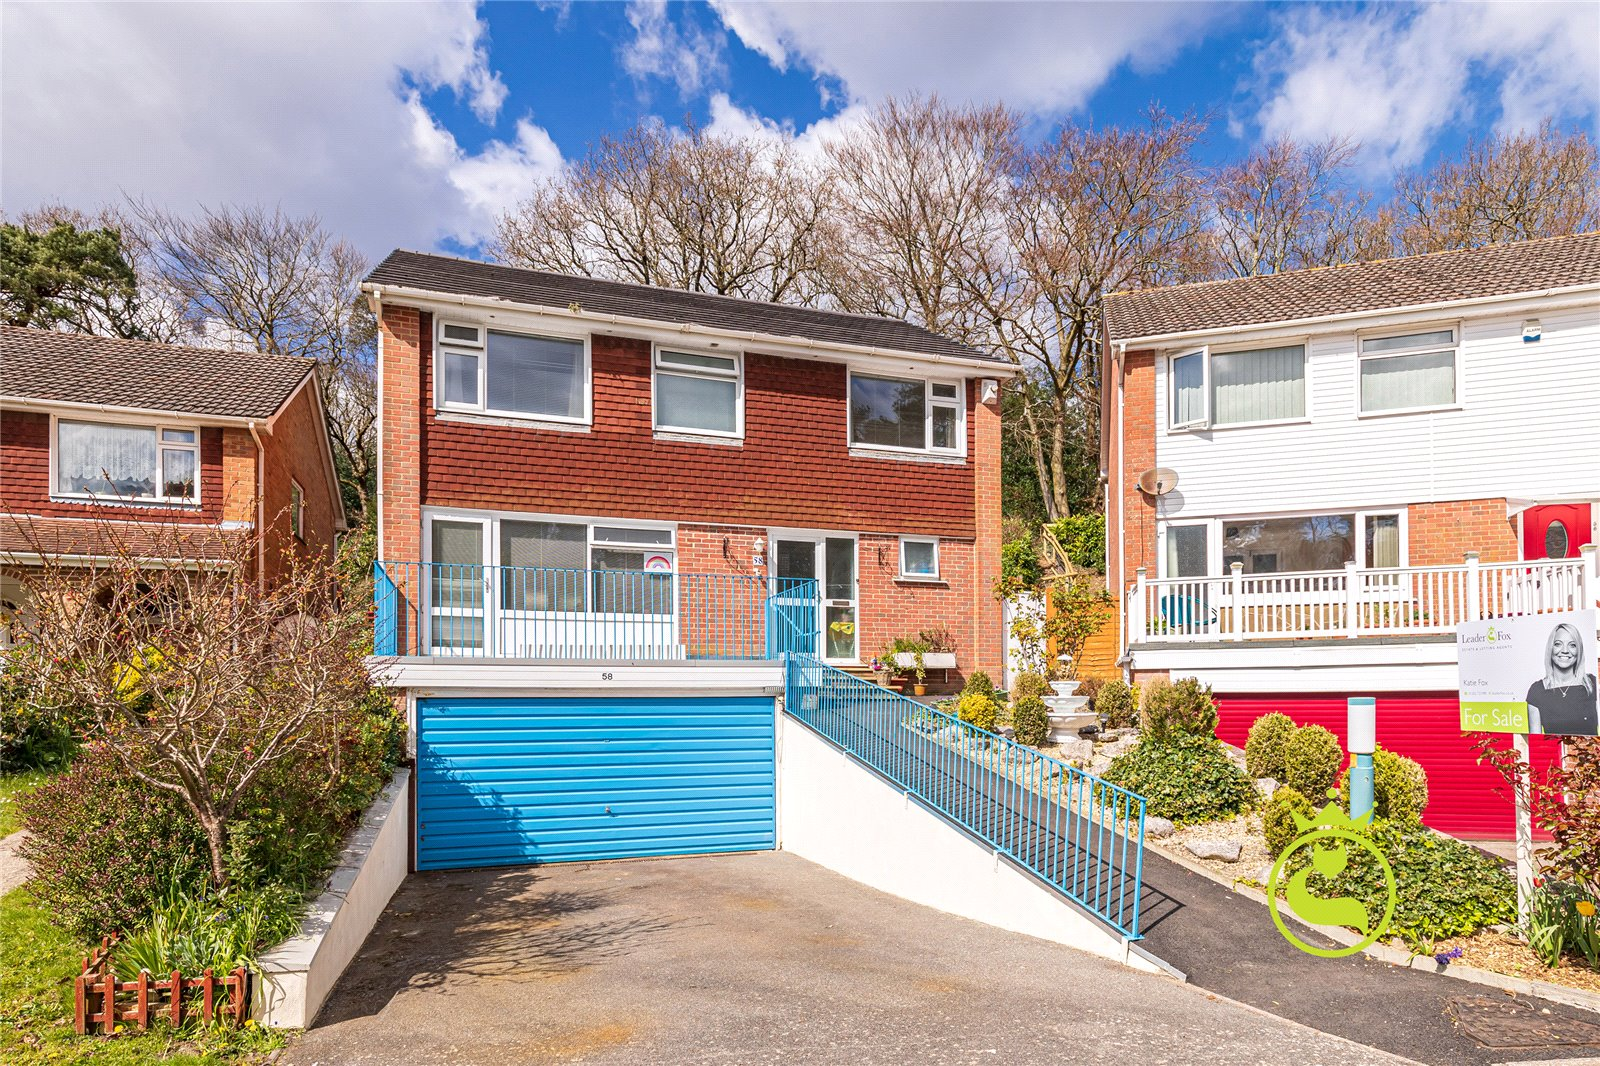 4 bed house for sale in Felton Road, Lower Parkstone - Property Image 1